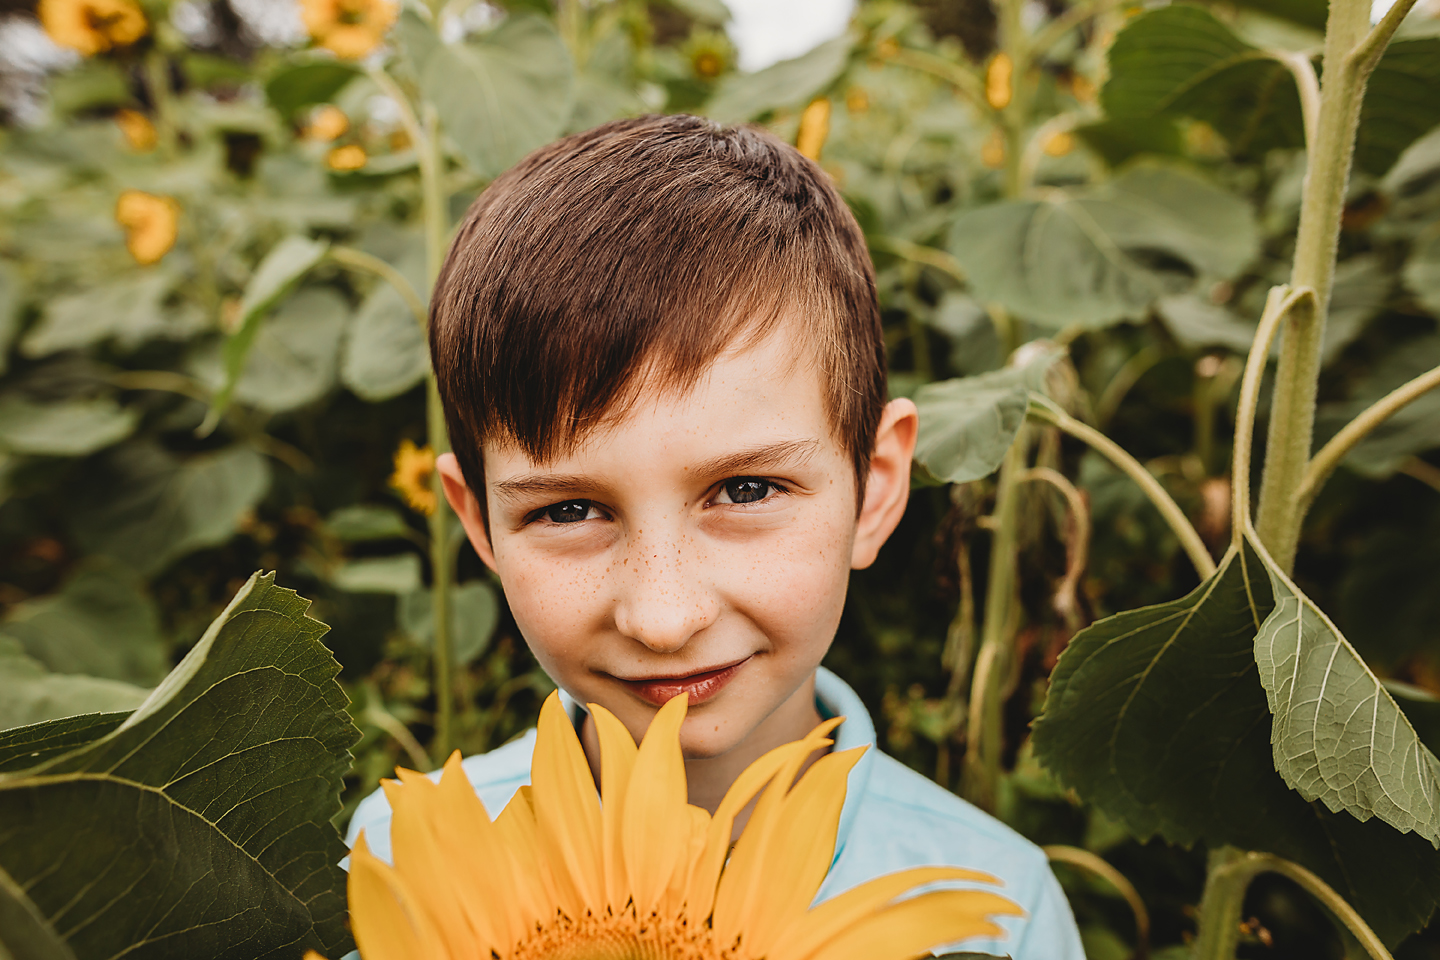 dartmouth photographer, north devon, south devon, portrait, sunflowers, beach, relaxed, natural, family, parenthood, stylish, loving, embracing, thoughtful, with feeling, tog, images, pics (1.jpg